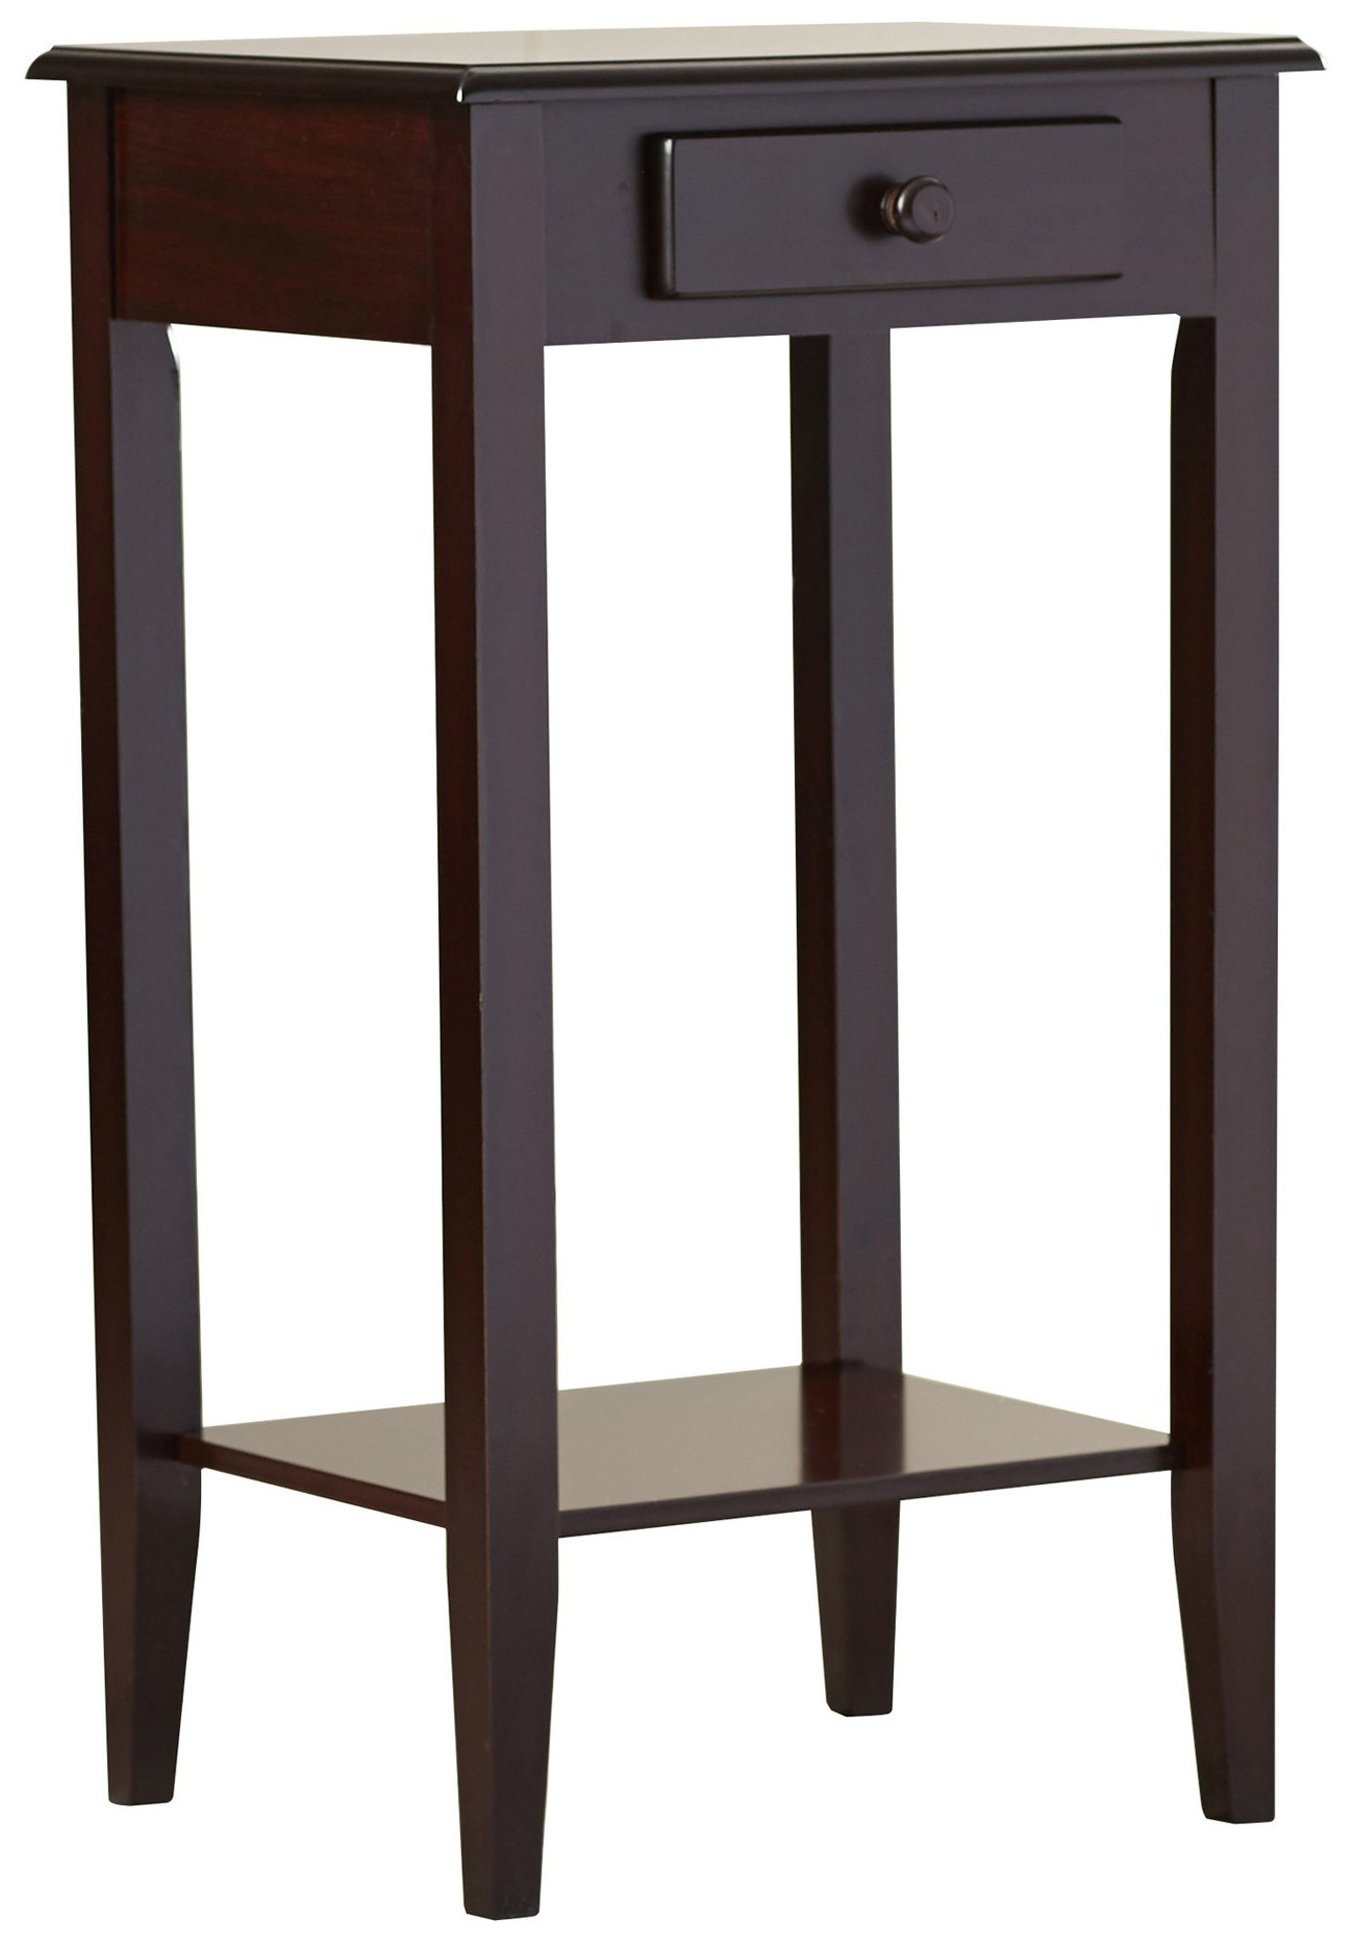 Indoor Plant Stand, Wood Pedestal Telephone Table With Storage Drawer, Brown Cherry Finish, Contemporary Style